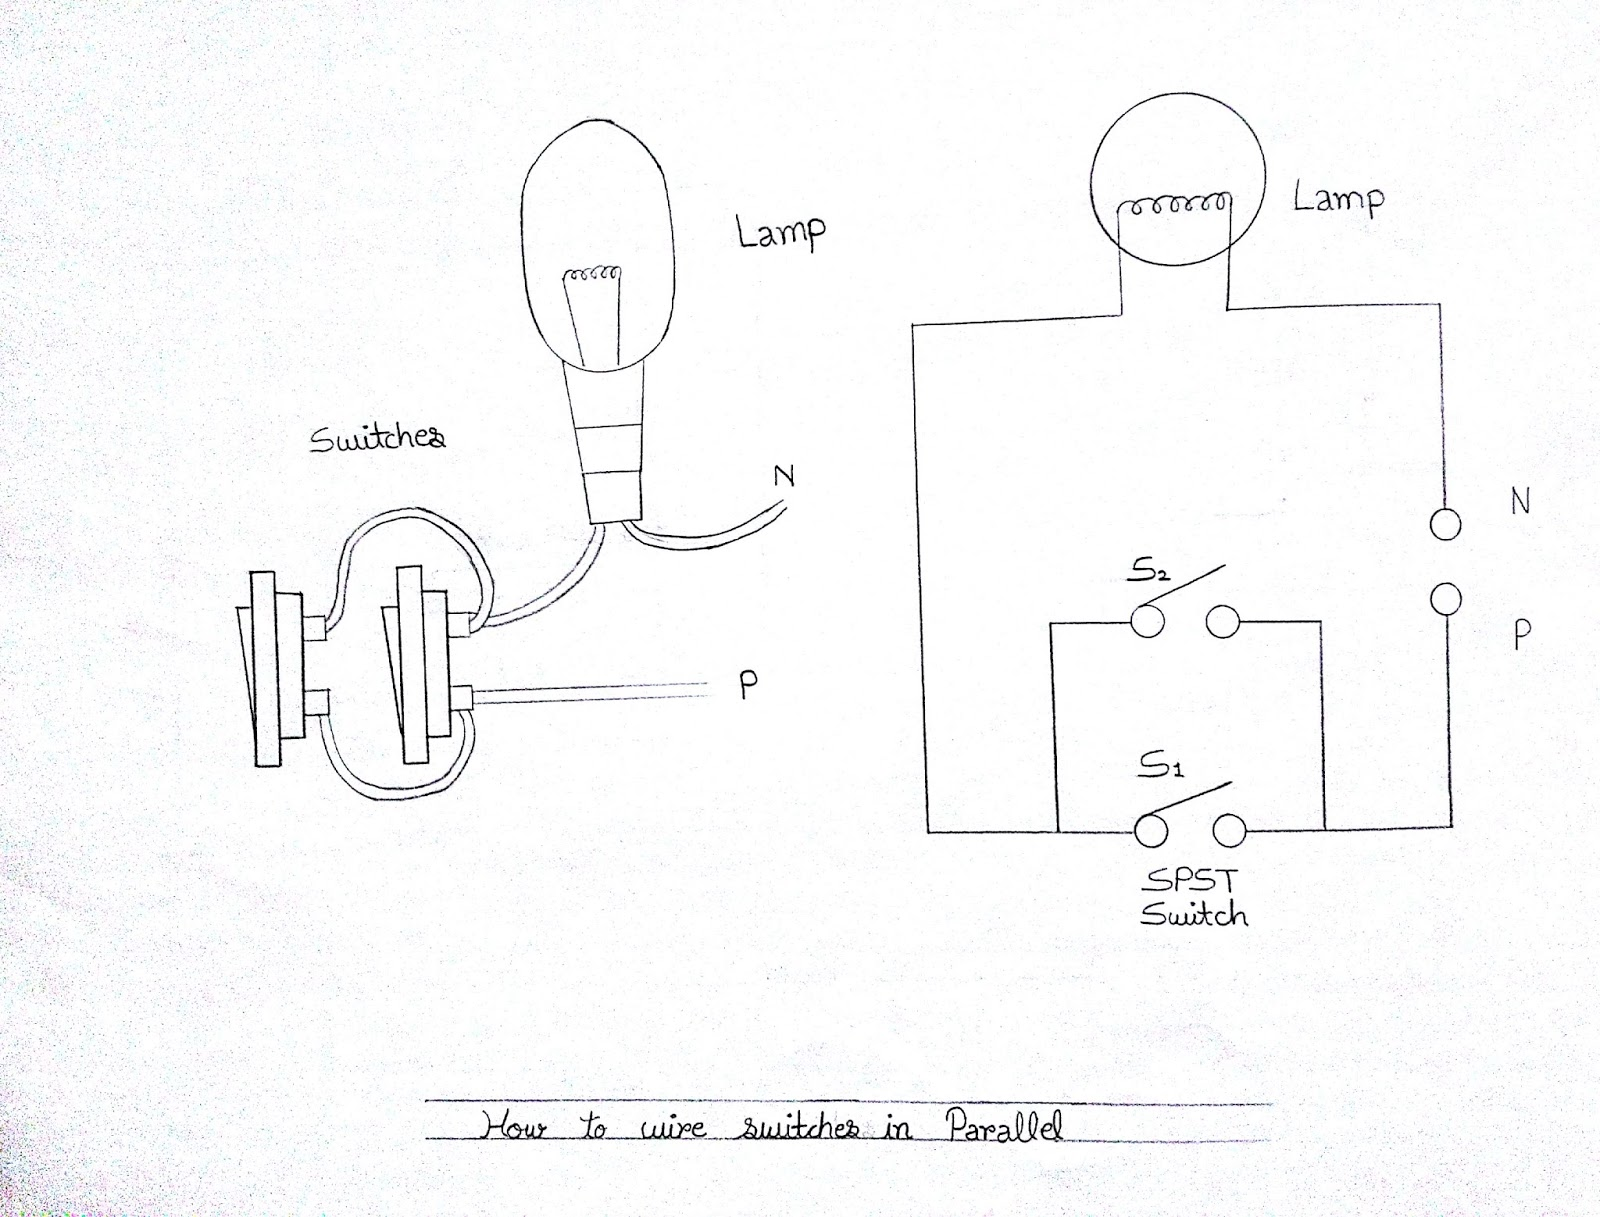 Learn Electrician Electrical Wiring Diagrams Of Switches Sockets Mini Spst Switch Diagram 5 Pin Wall Socket Connection